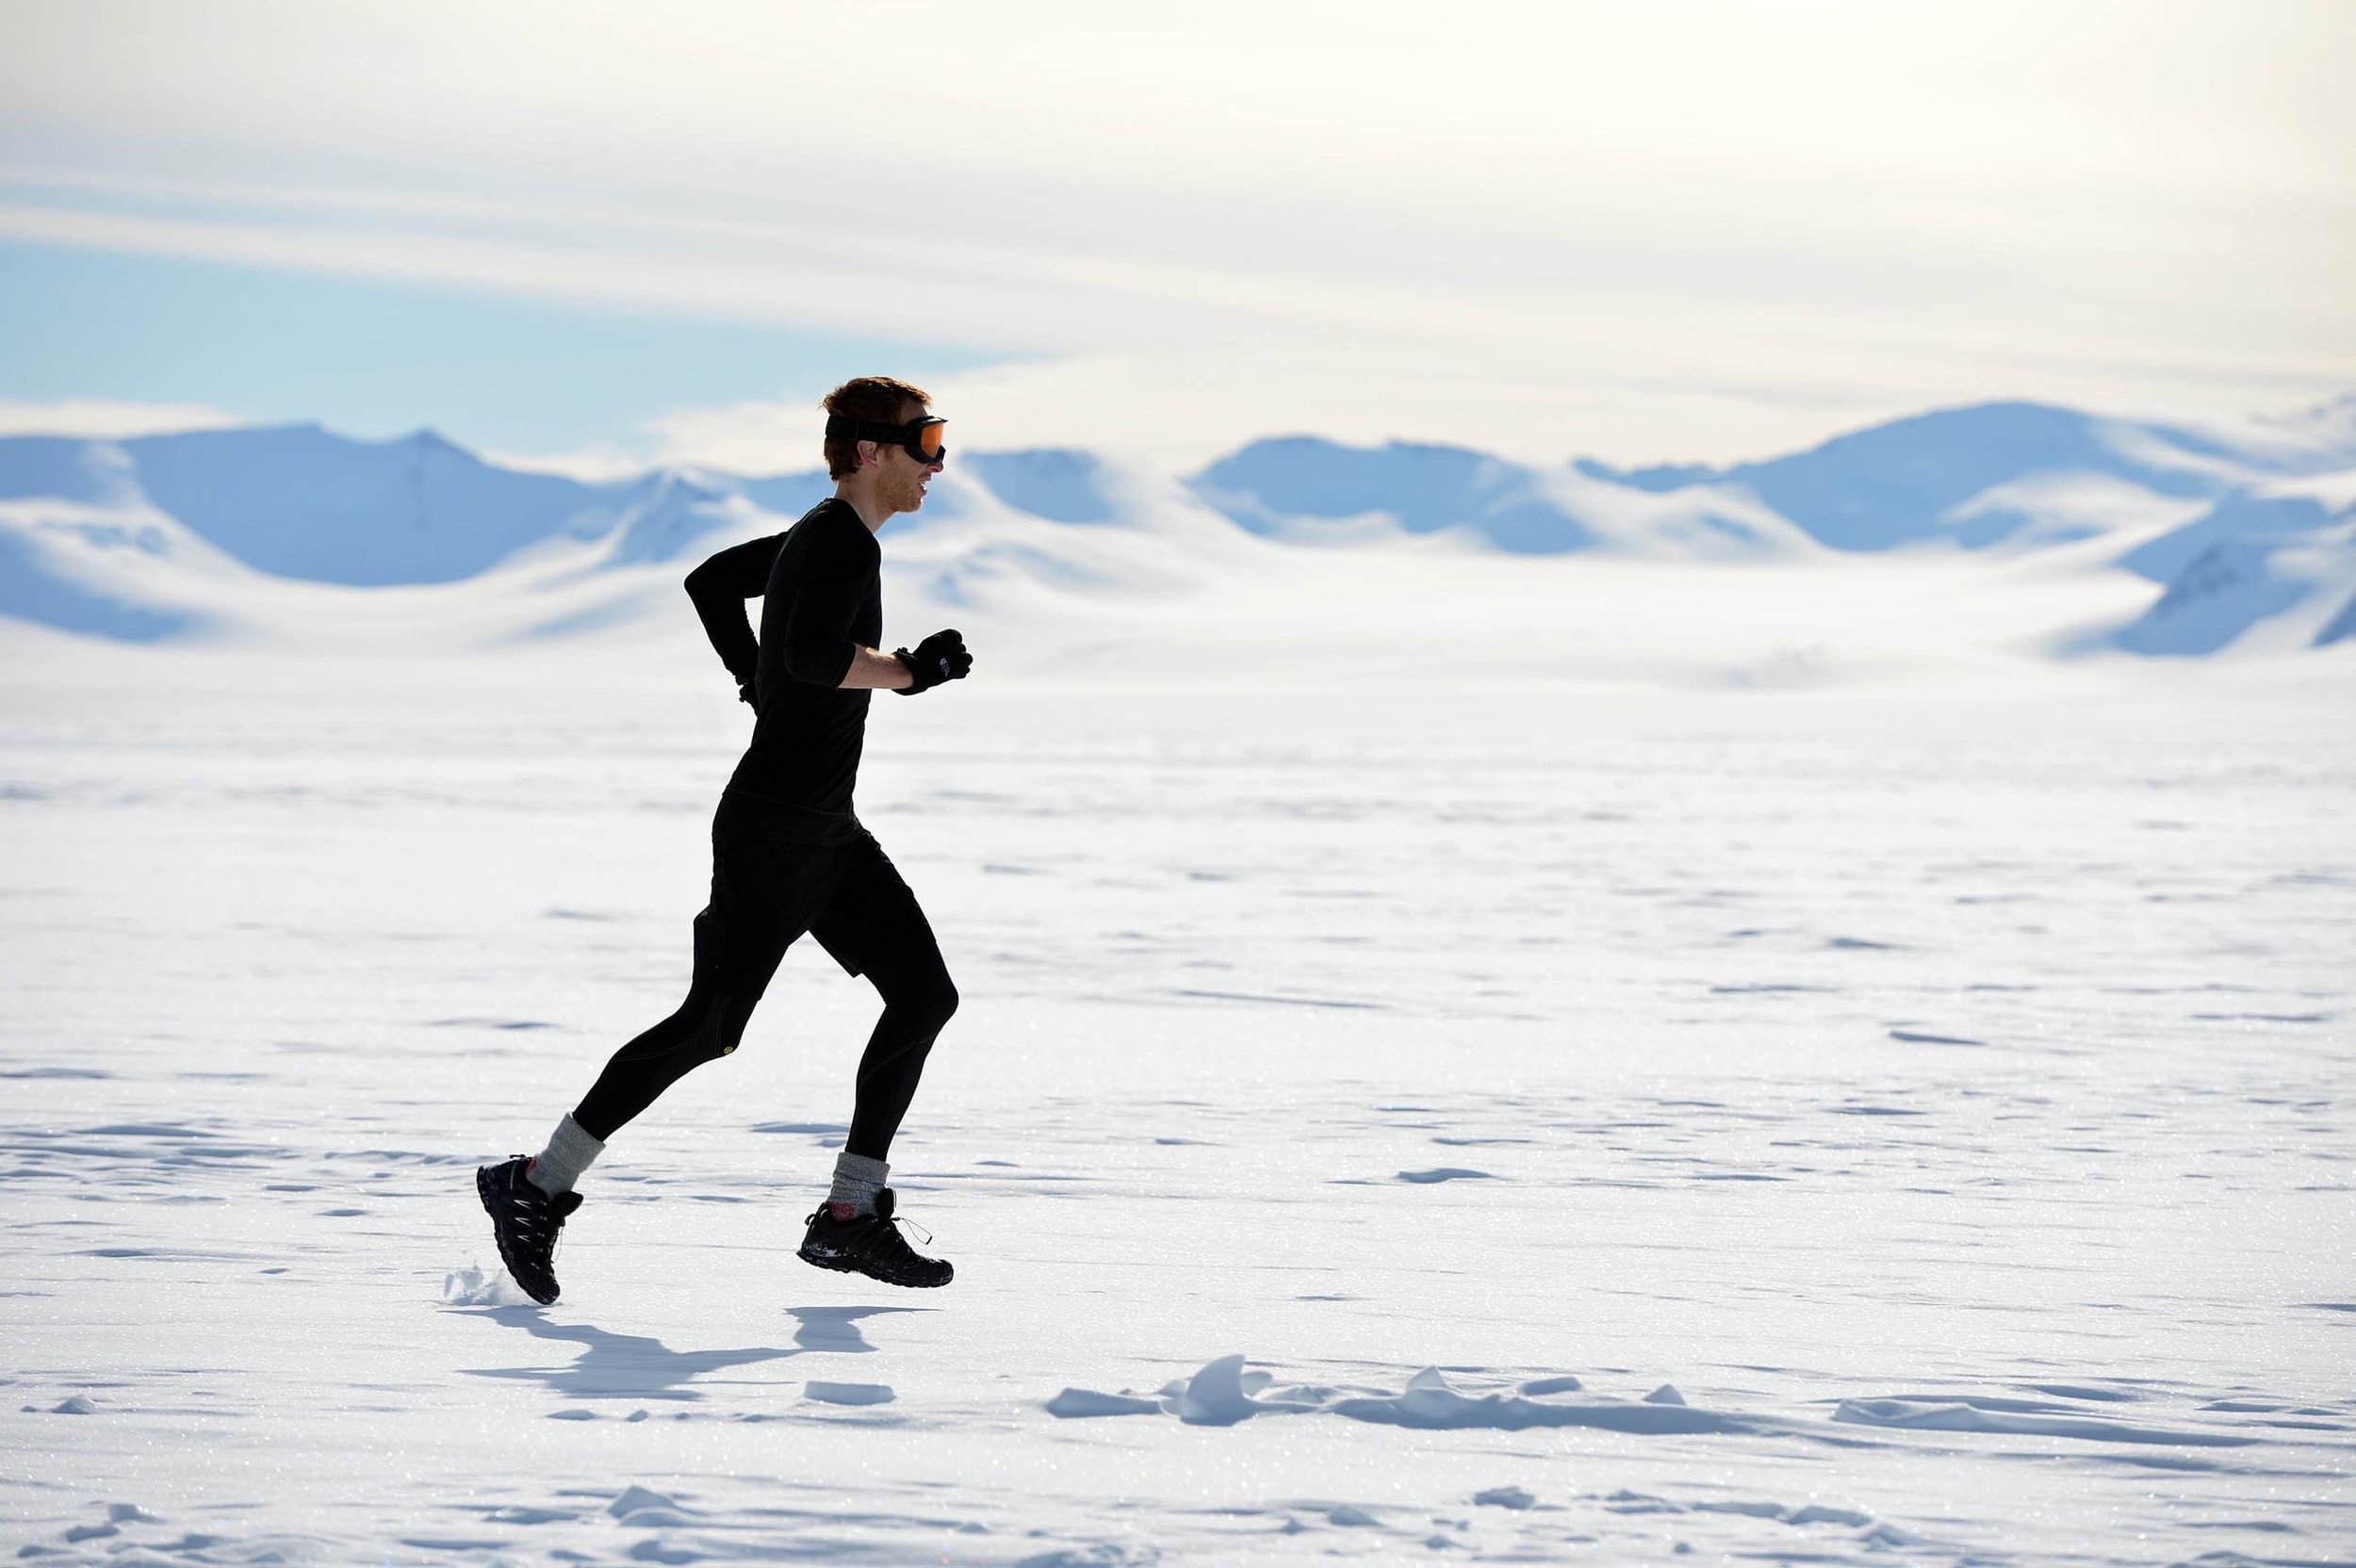 Dr Andrew Murray Run The World - International press campaign for Andrew Murray, a GP, and the Scottish Government's Physical Activity Champion running seven ultra marathons on seven continents over seven consecutive days.